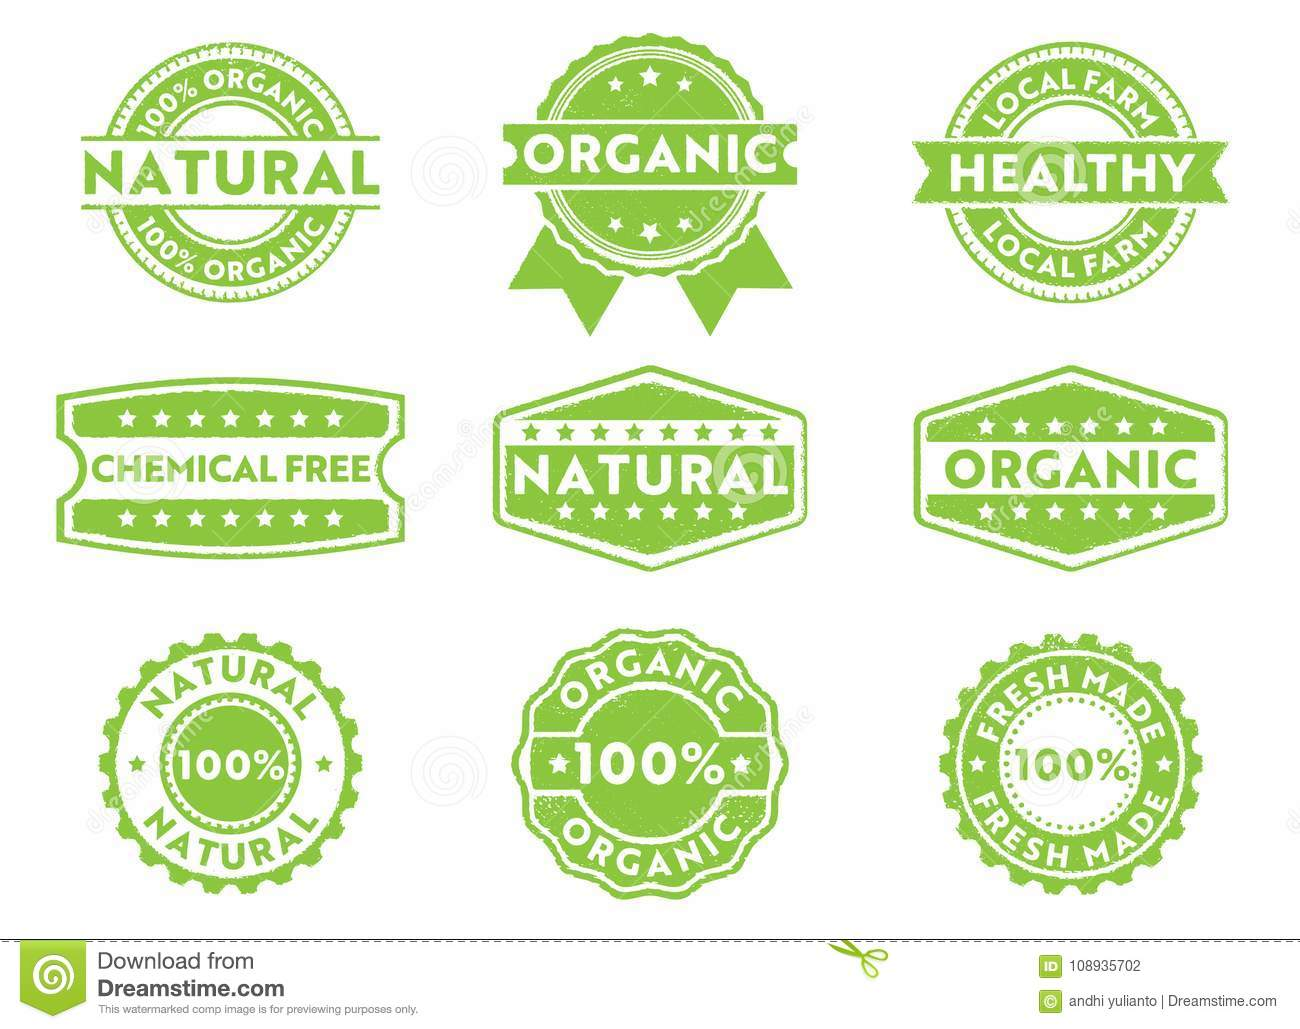 Vector stamp badge label for marketing selling organic, natural, fresh made, chemical free, local products